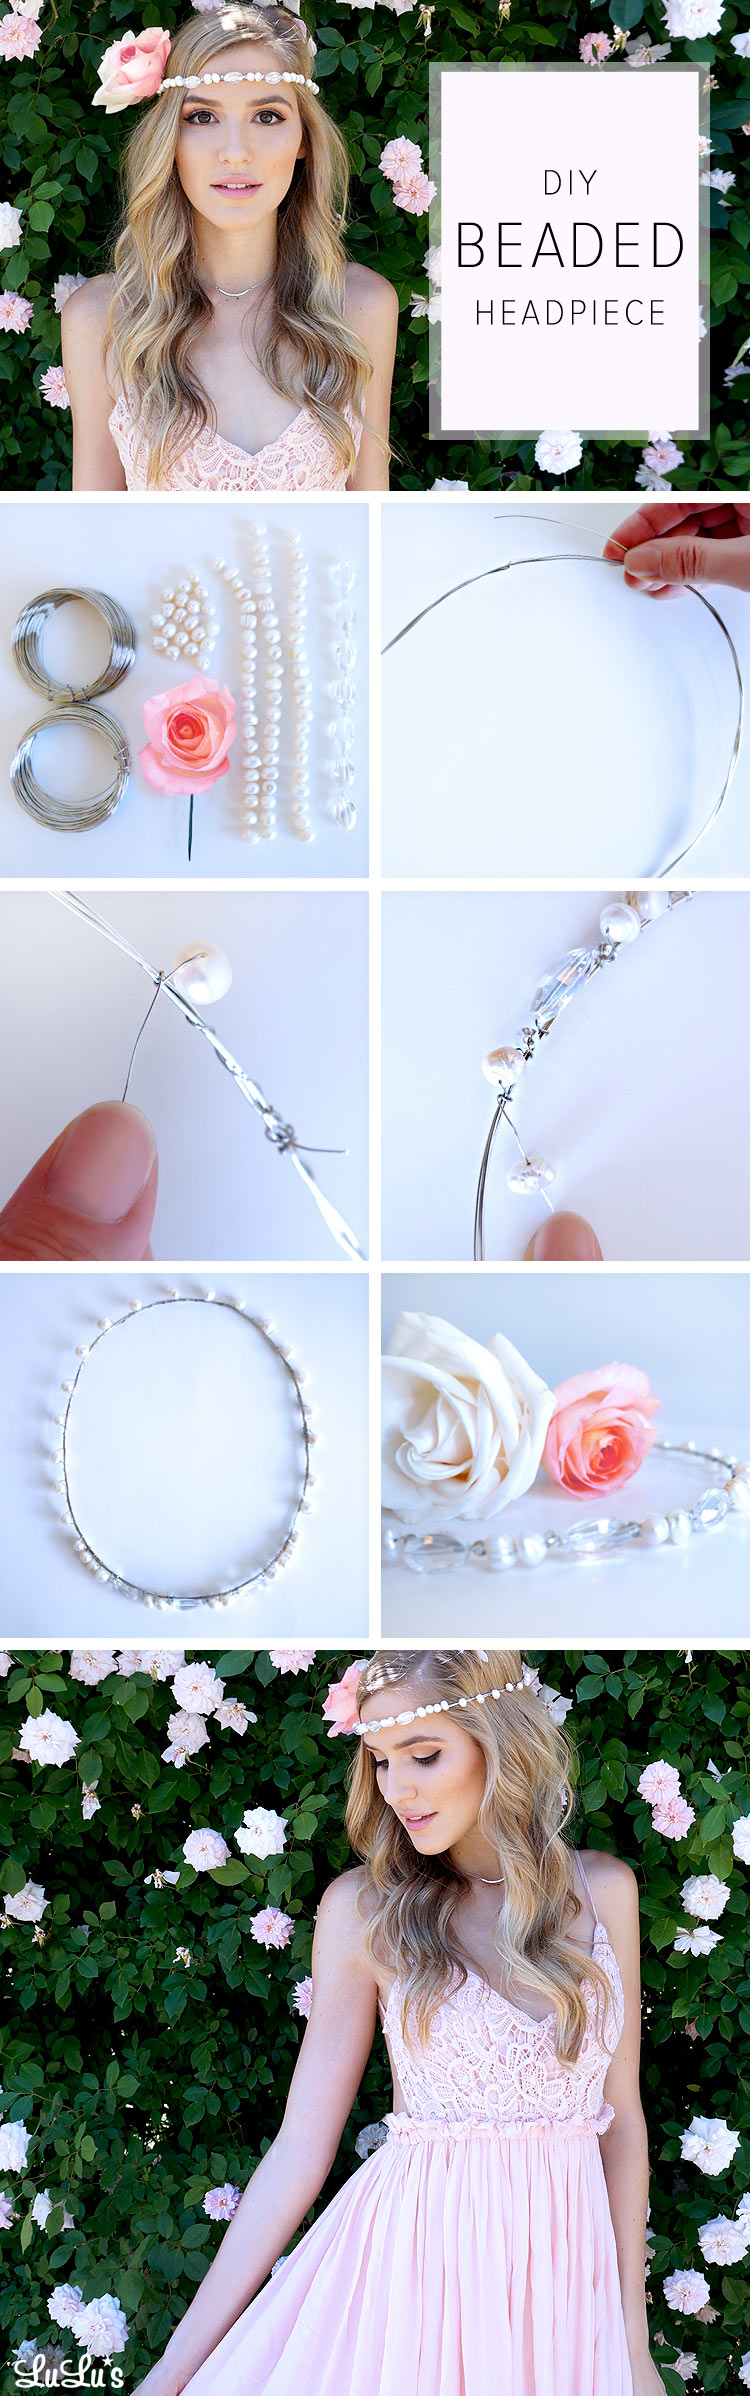 diy beaded headpiece